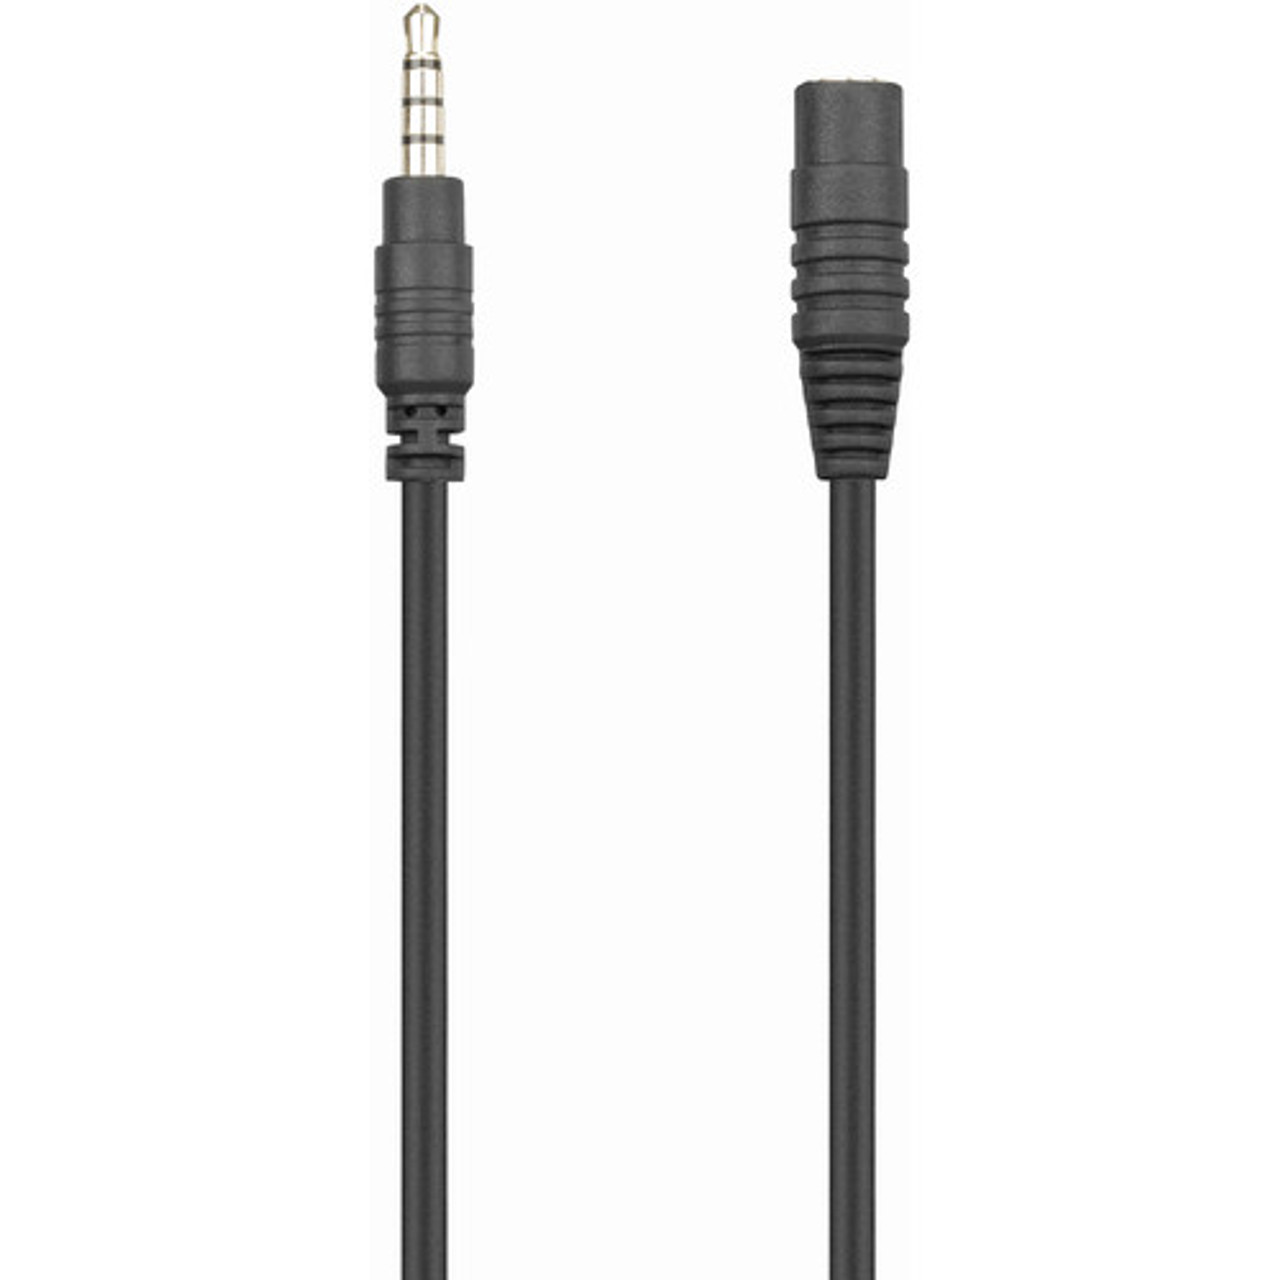 Saramonic Sr Sc5000 Female 3 5mm Trrs To Male 3 5mm Trrs Extension Cable 5m Auckland Nz